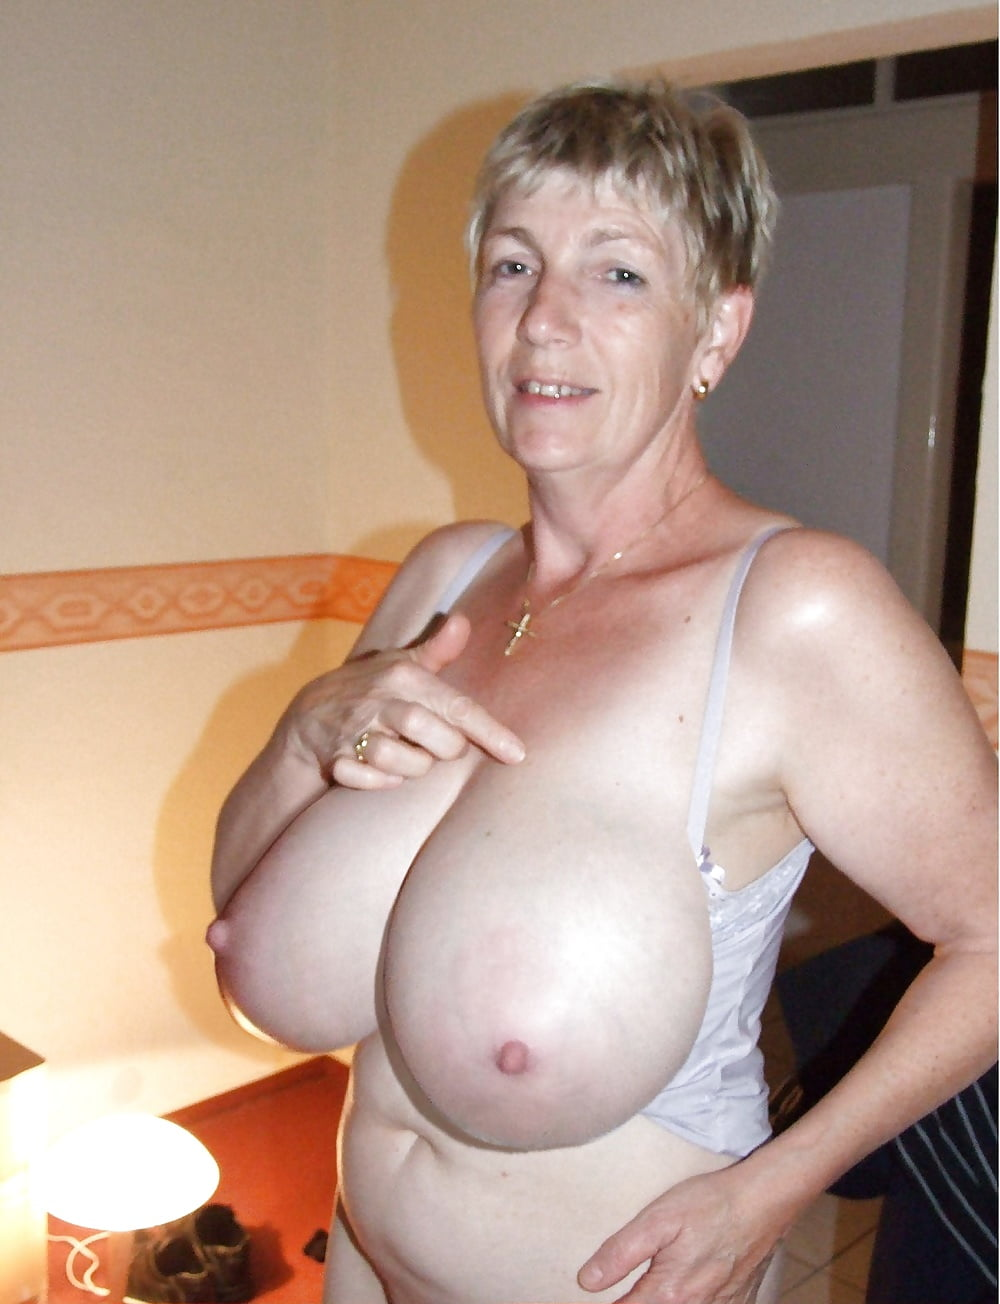 Granny Big Boobs Big Ass Woman Nude Photo